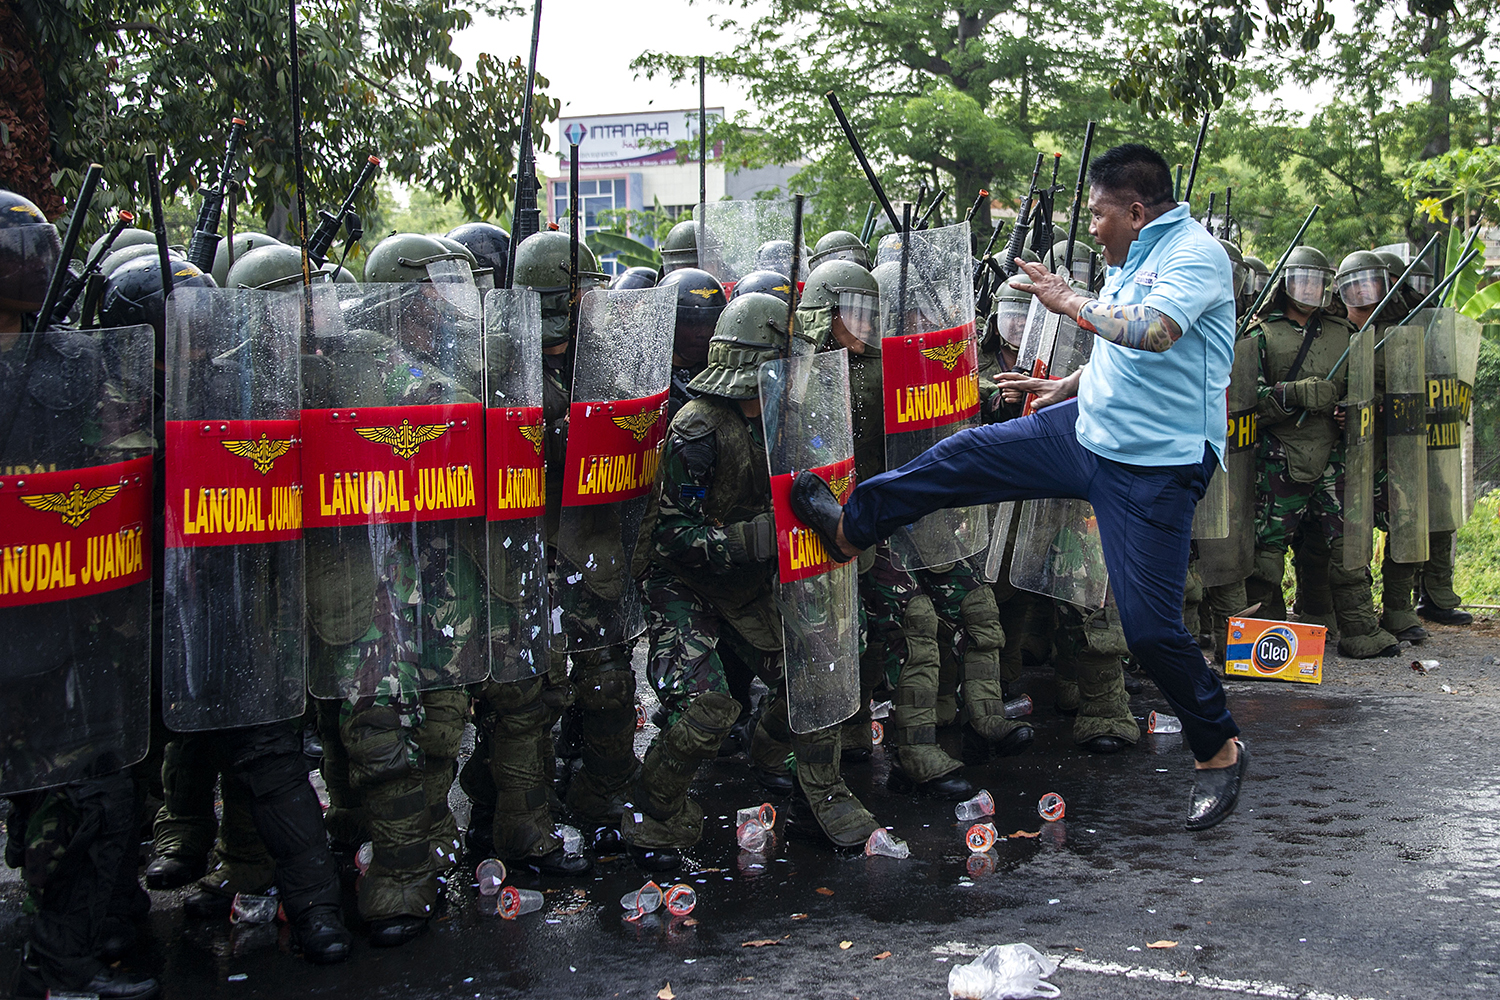 A member of the military playing the role of protester challenges a line of Indonesian Navy frogmen and commandos during an anti-terror drill to sharpen their skills in Sidoarjo, East Java, on Nov. 19. JUNI KRISWANTO/AFP via Getty Images